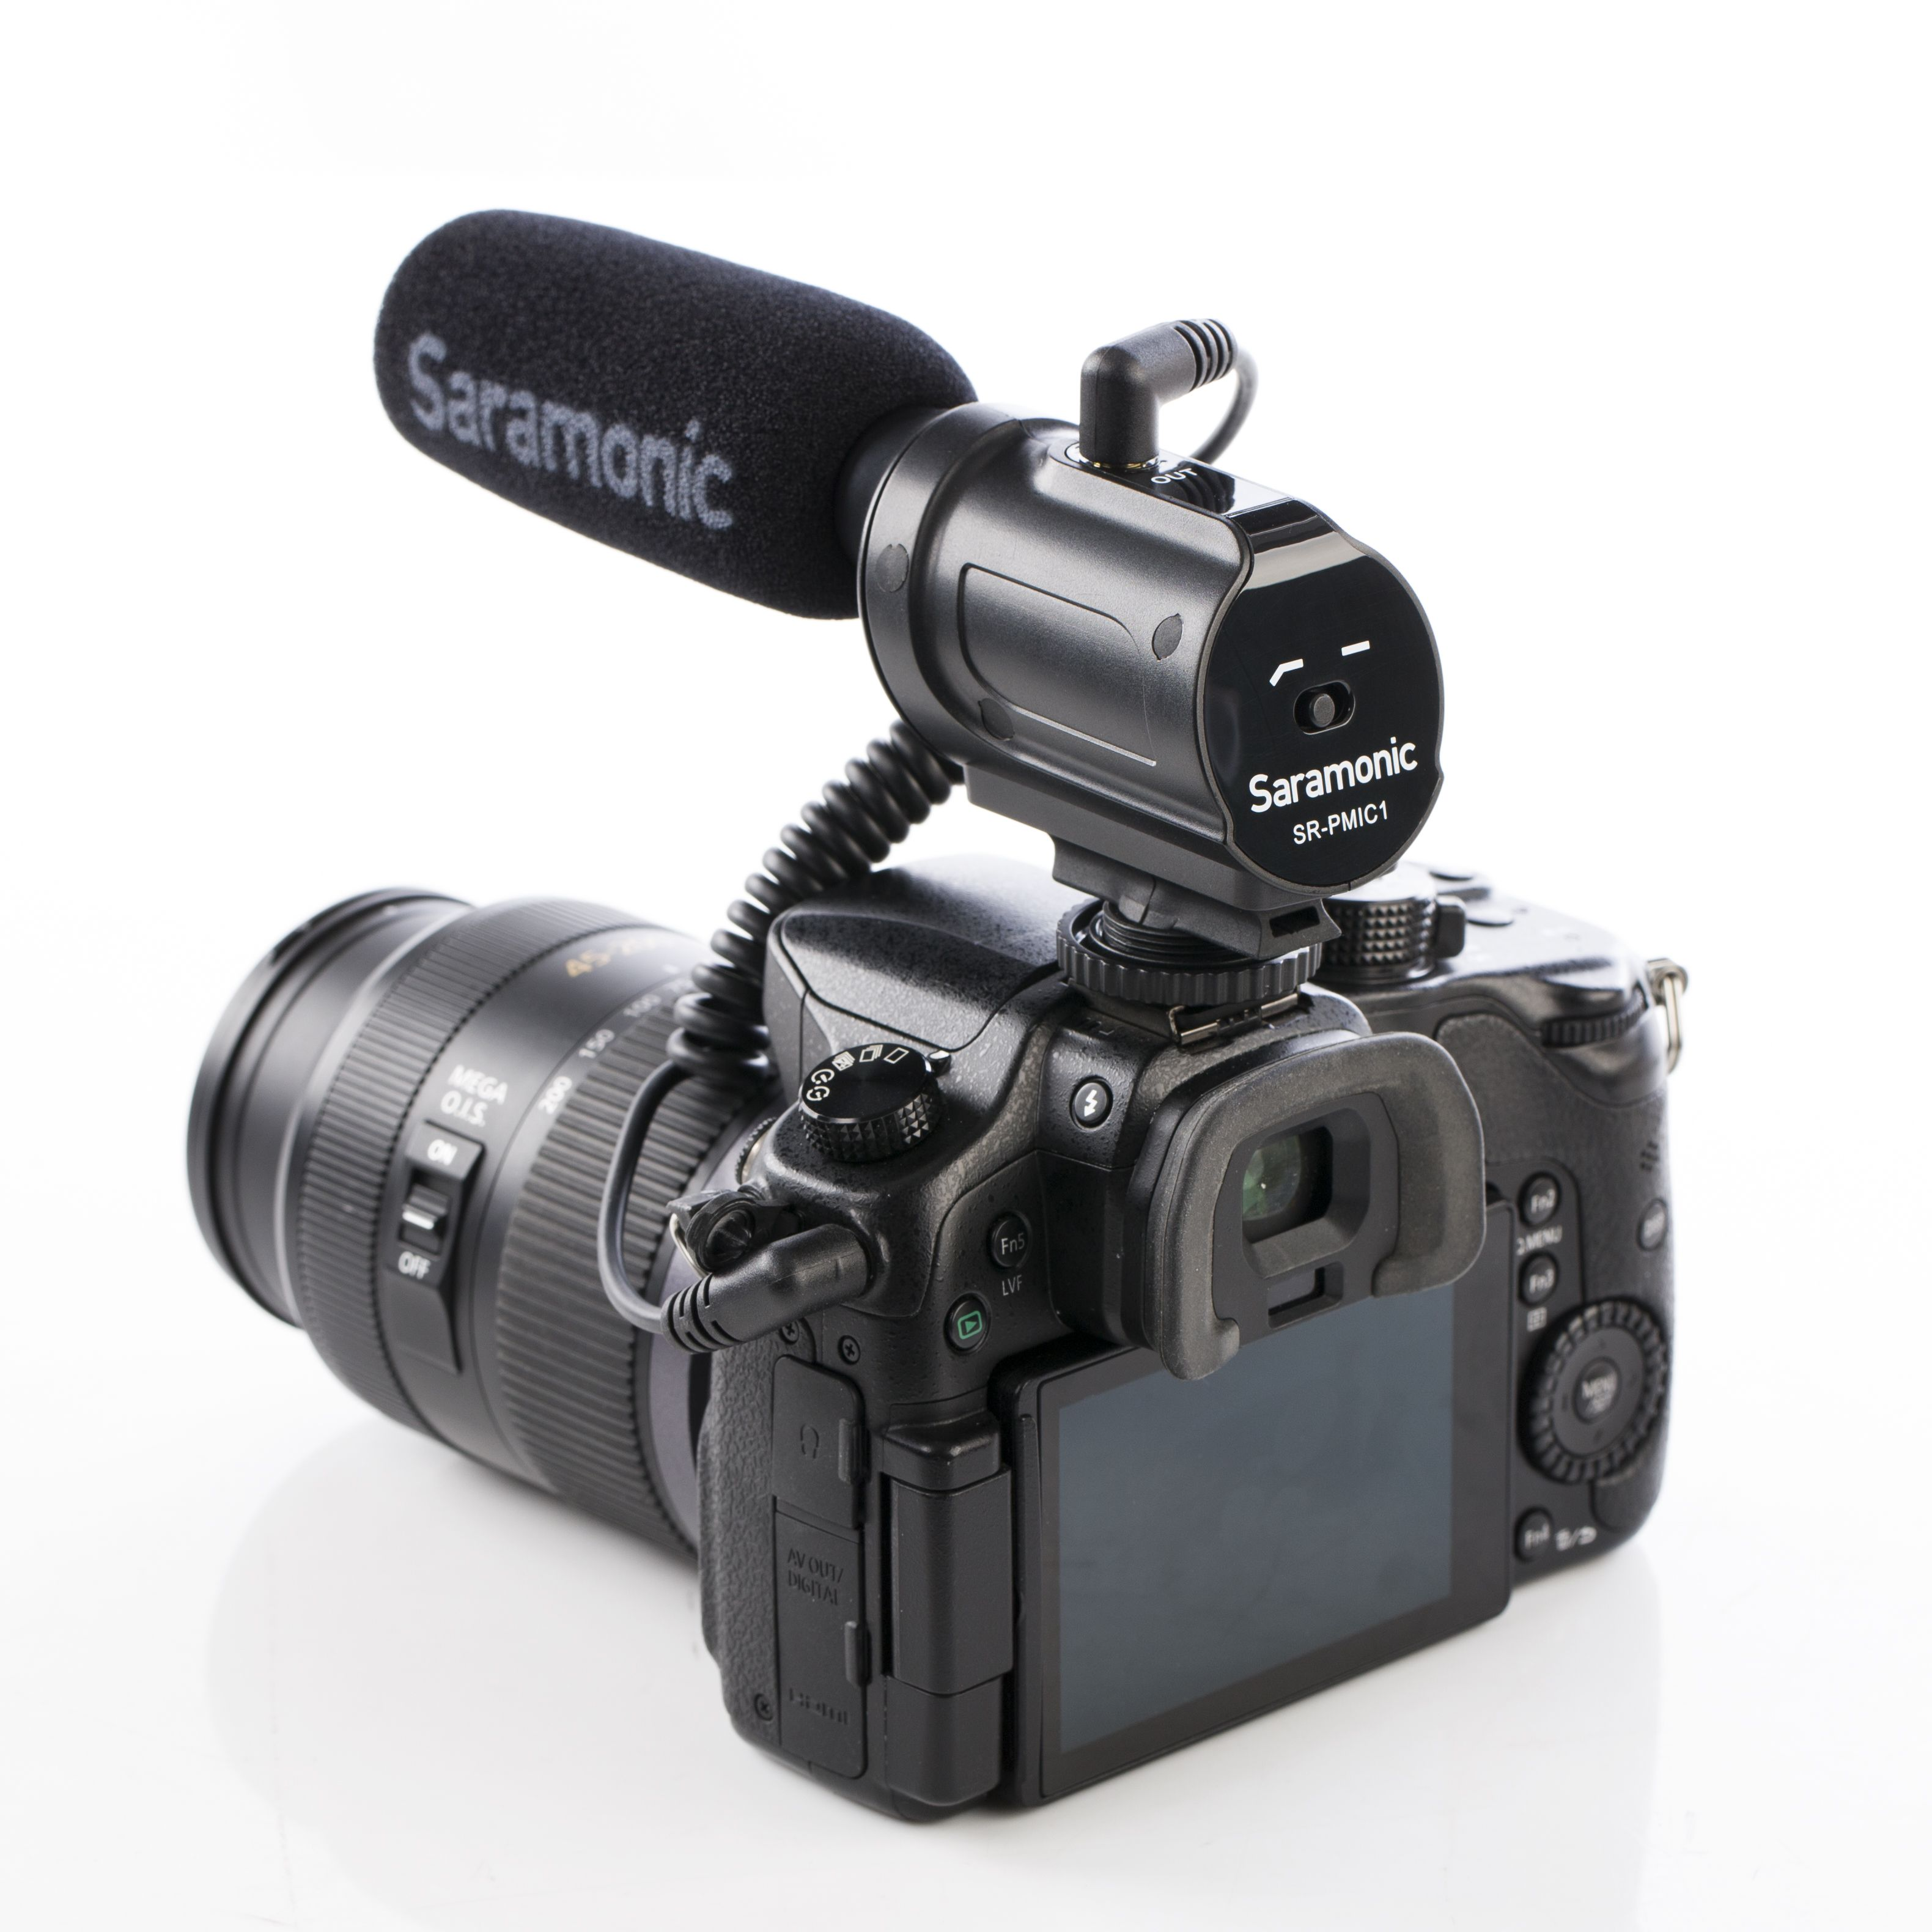 Pin On Saramonic Sr Pmic1 Super Cardioid Unidirectional Condenser Microphone For Dslr Cameras And Camcorder